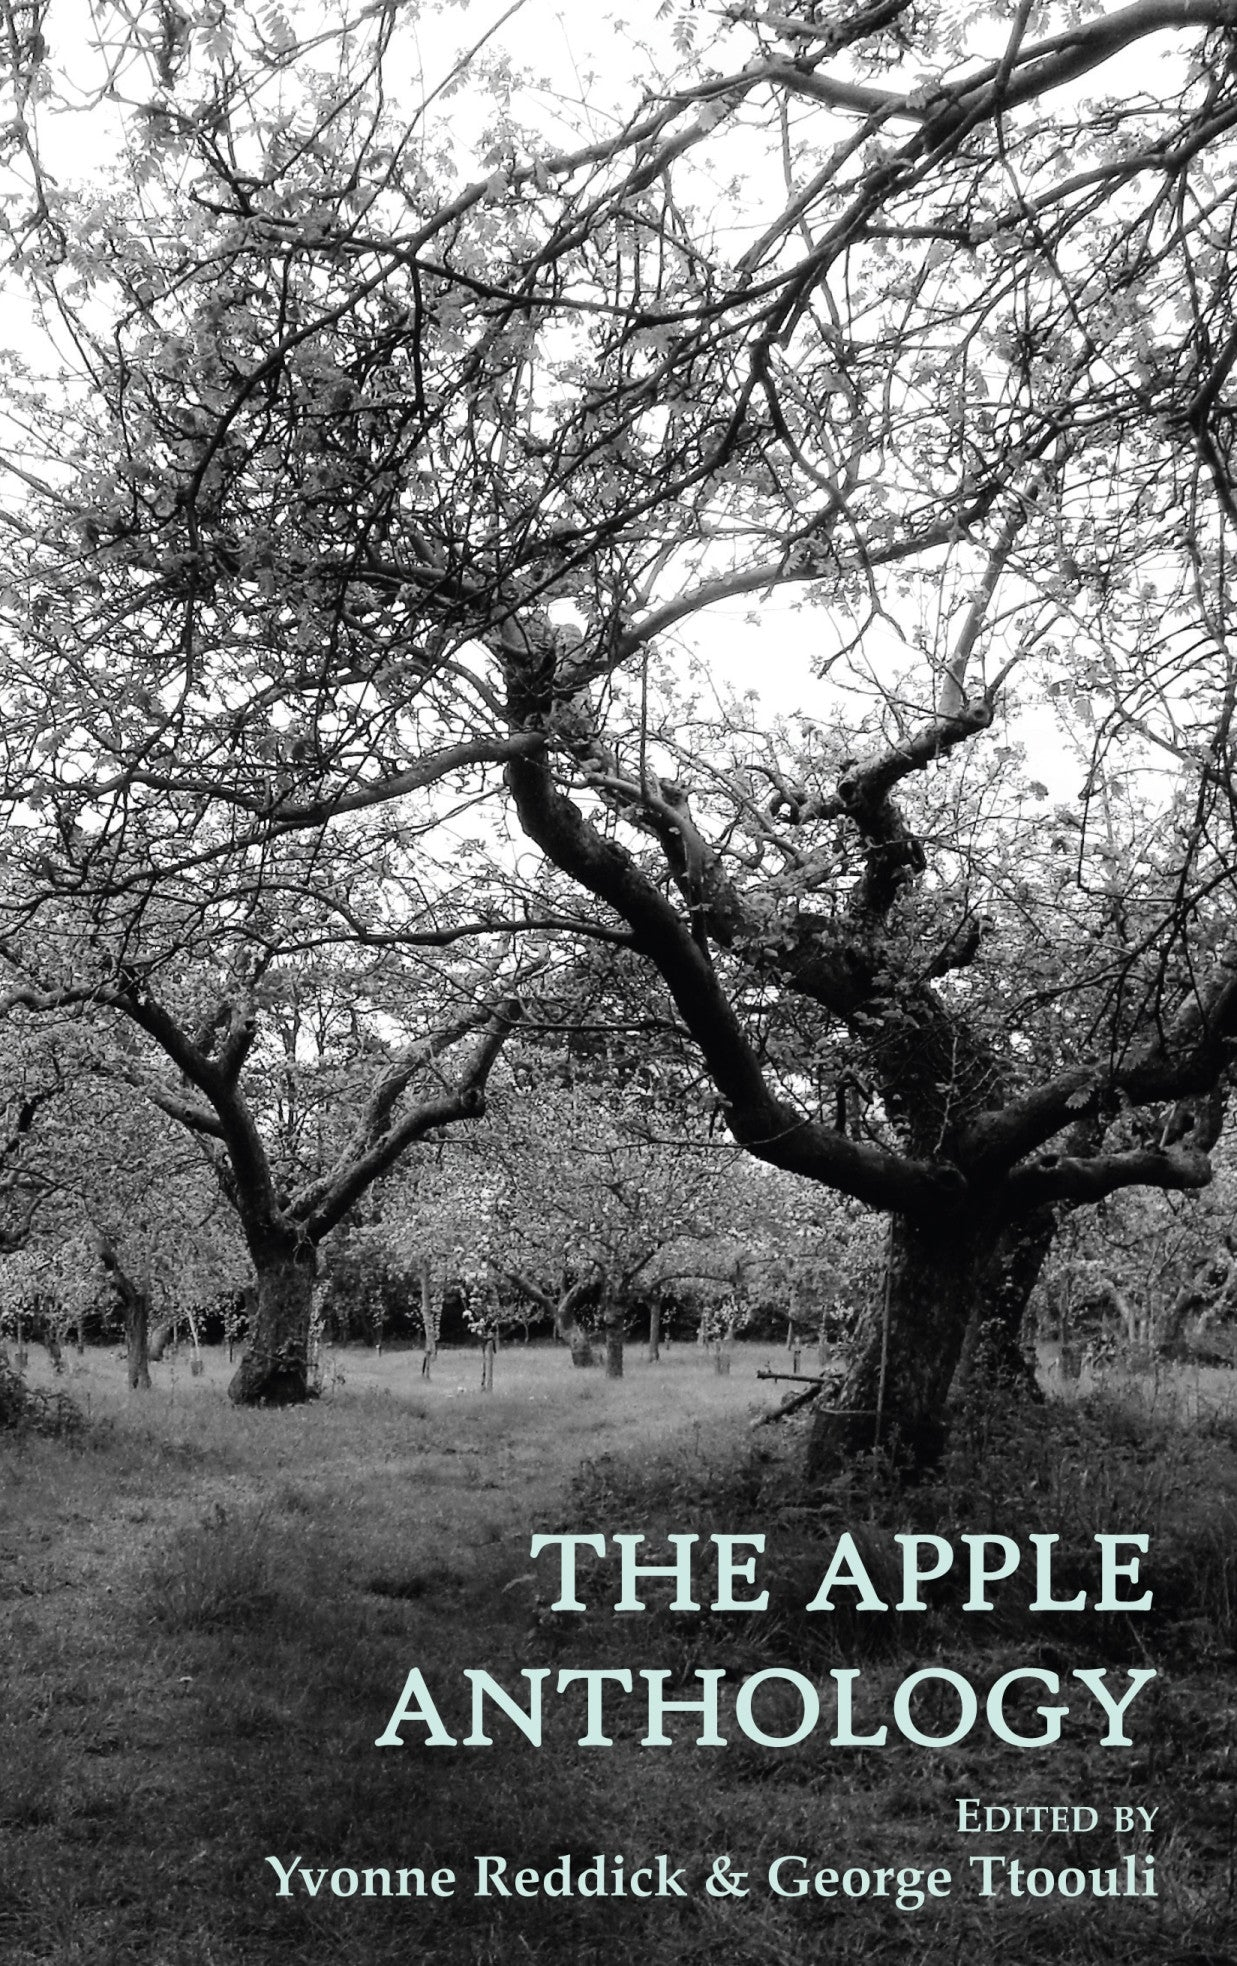 The Apple Anthology